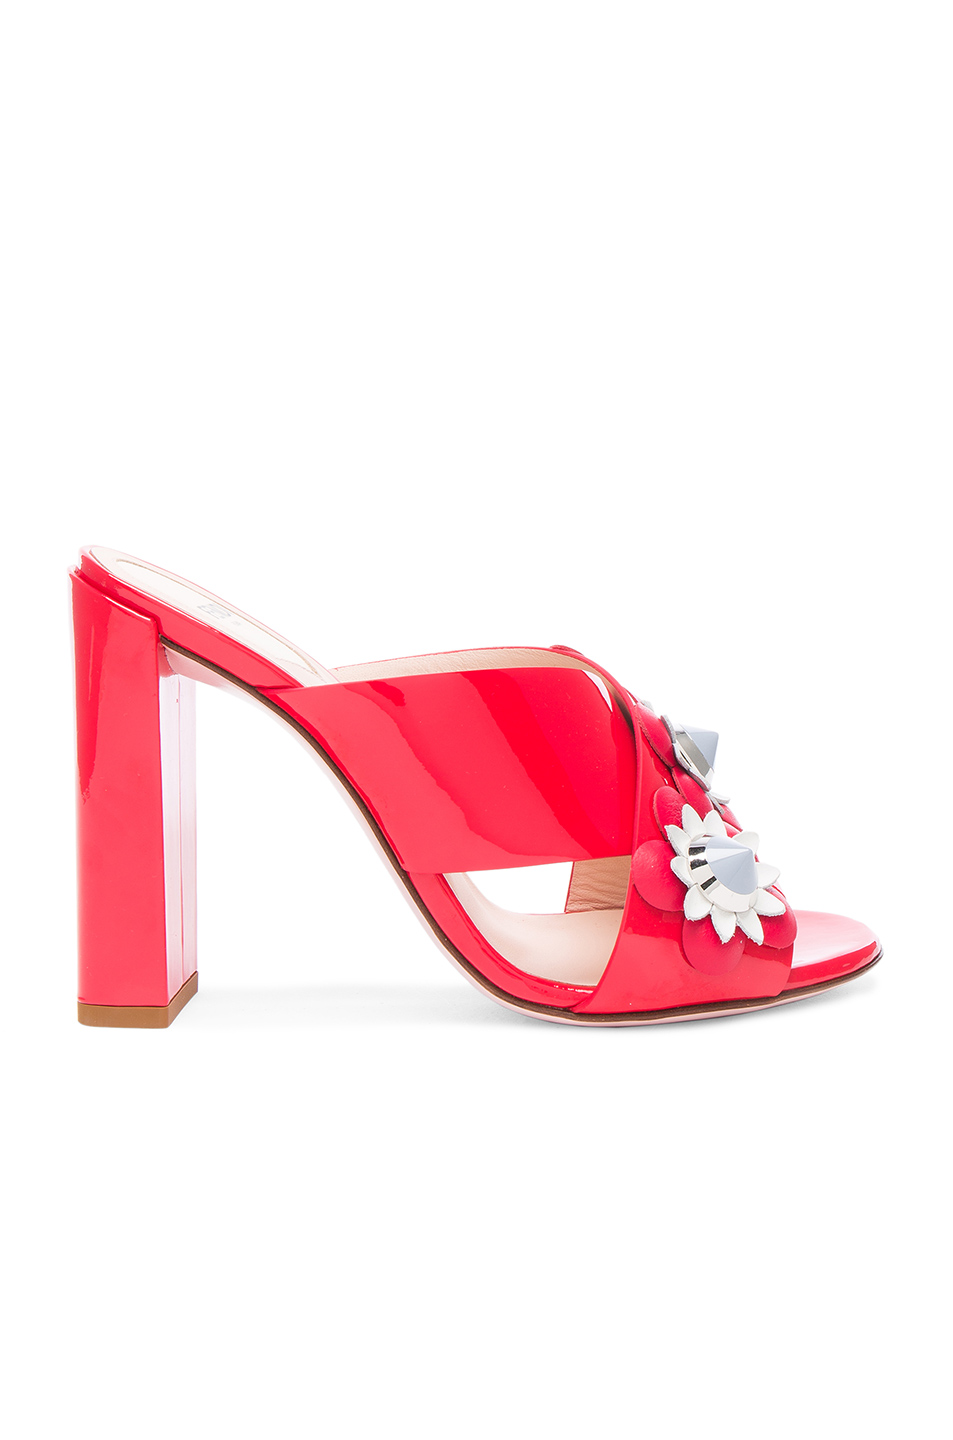 Fendi Patent Leather Crisscross Heels in Red